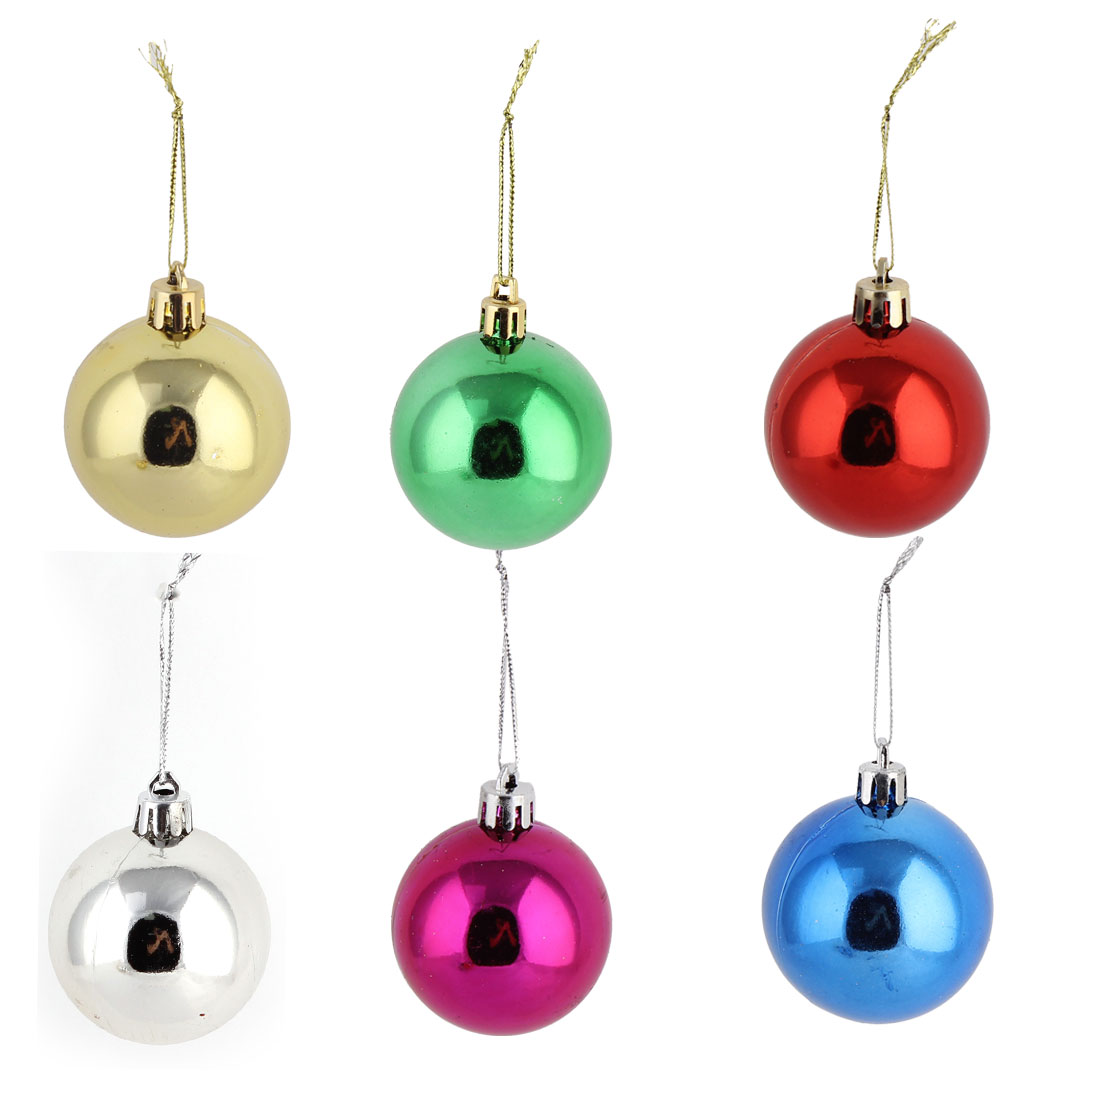 Household Christmas Tree Plastic Reflective Artificial Adornments Ball 6 PCS